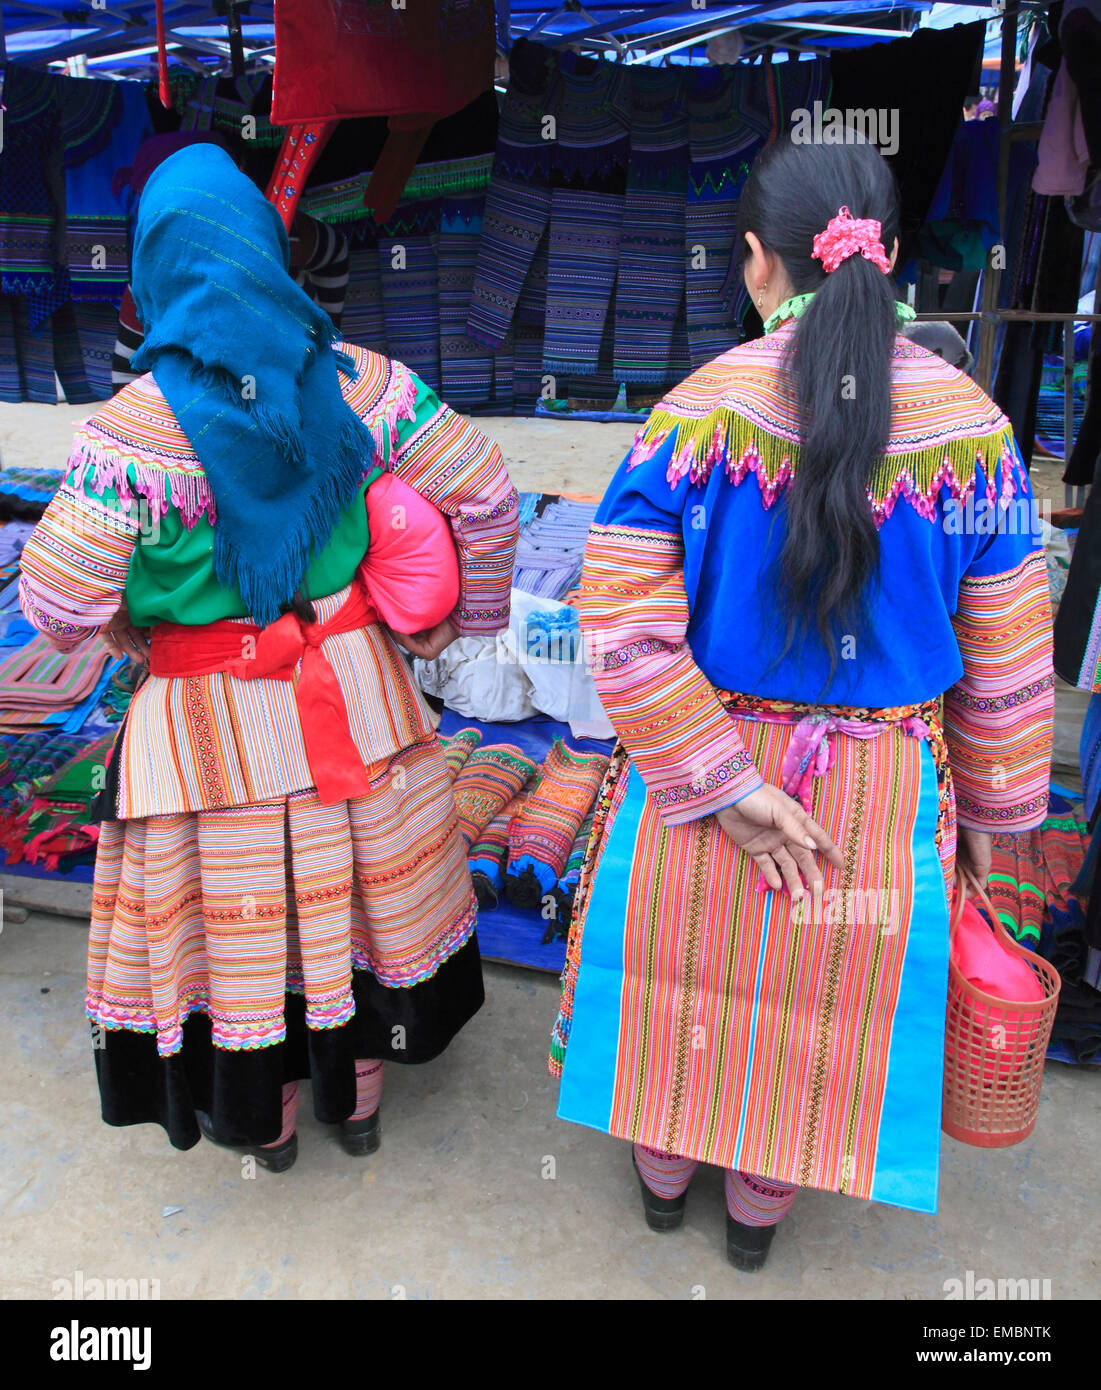 Vietnam, Lao Cai Province, Bac Ha, market, hill tribes people, women, - Stock Image